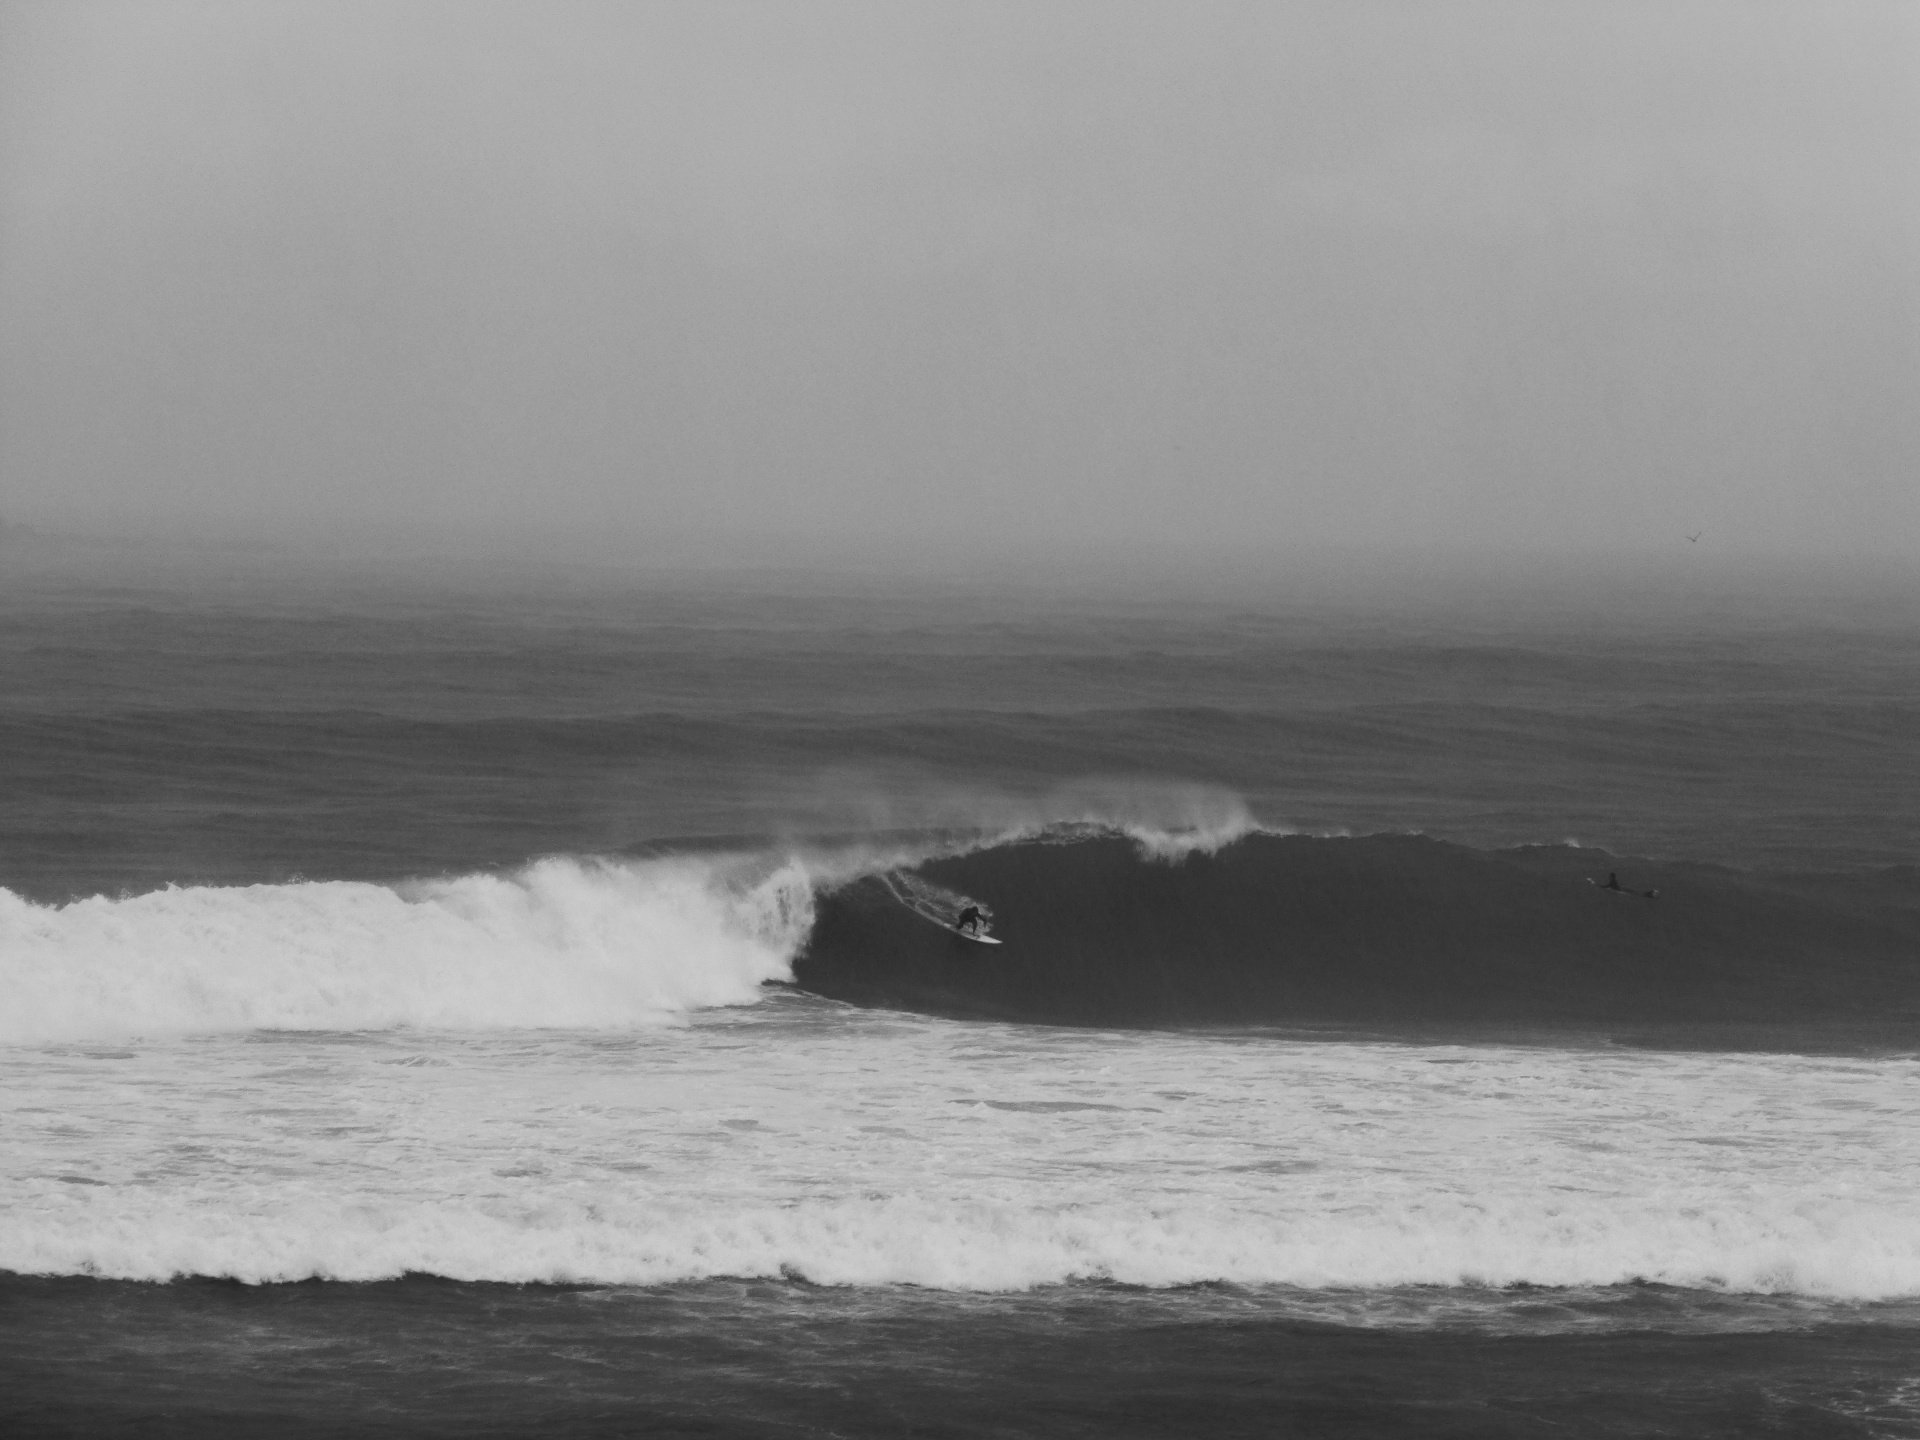 Edward Keen's photo of Mundaka